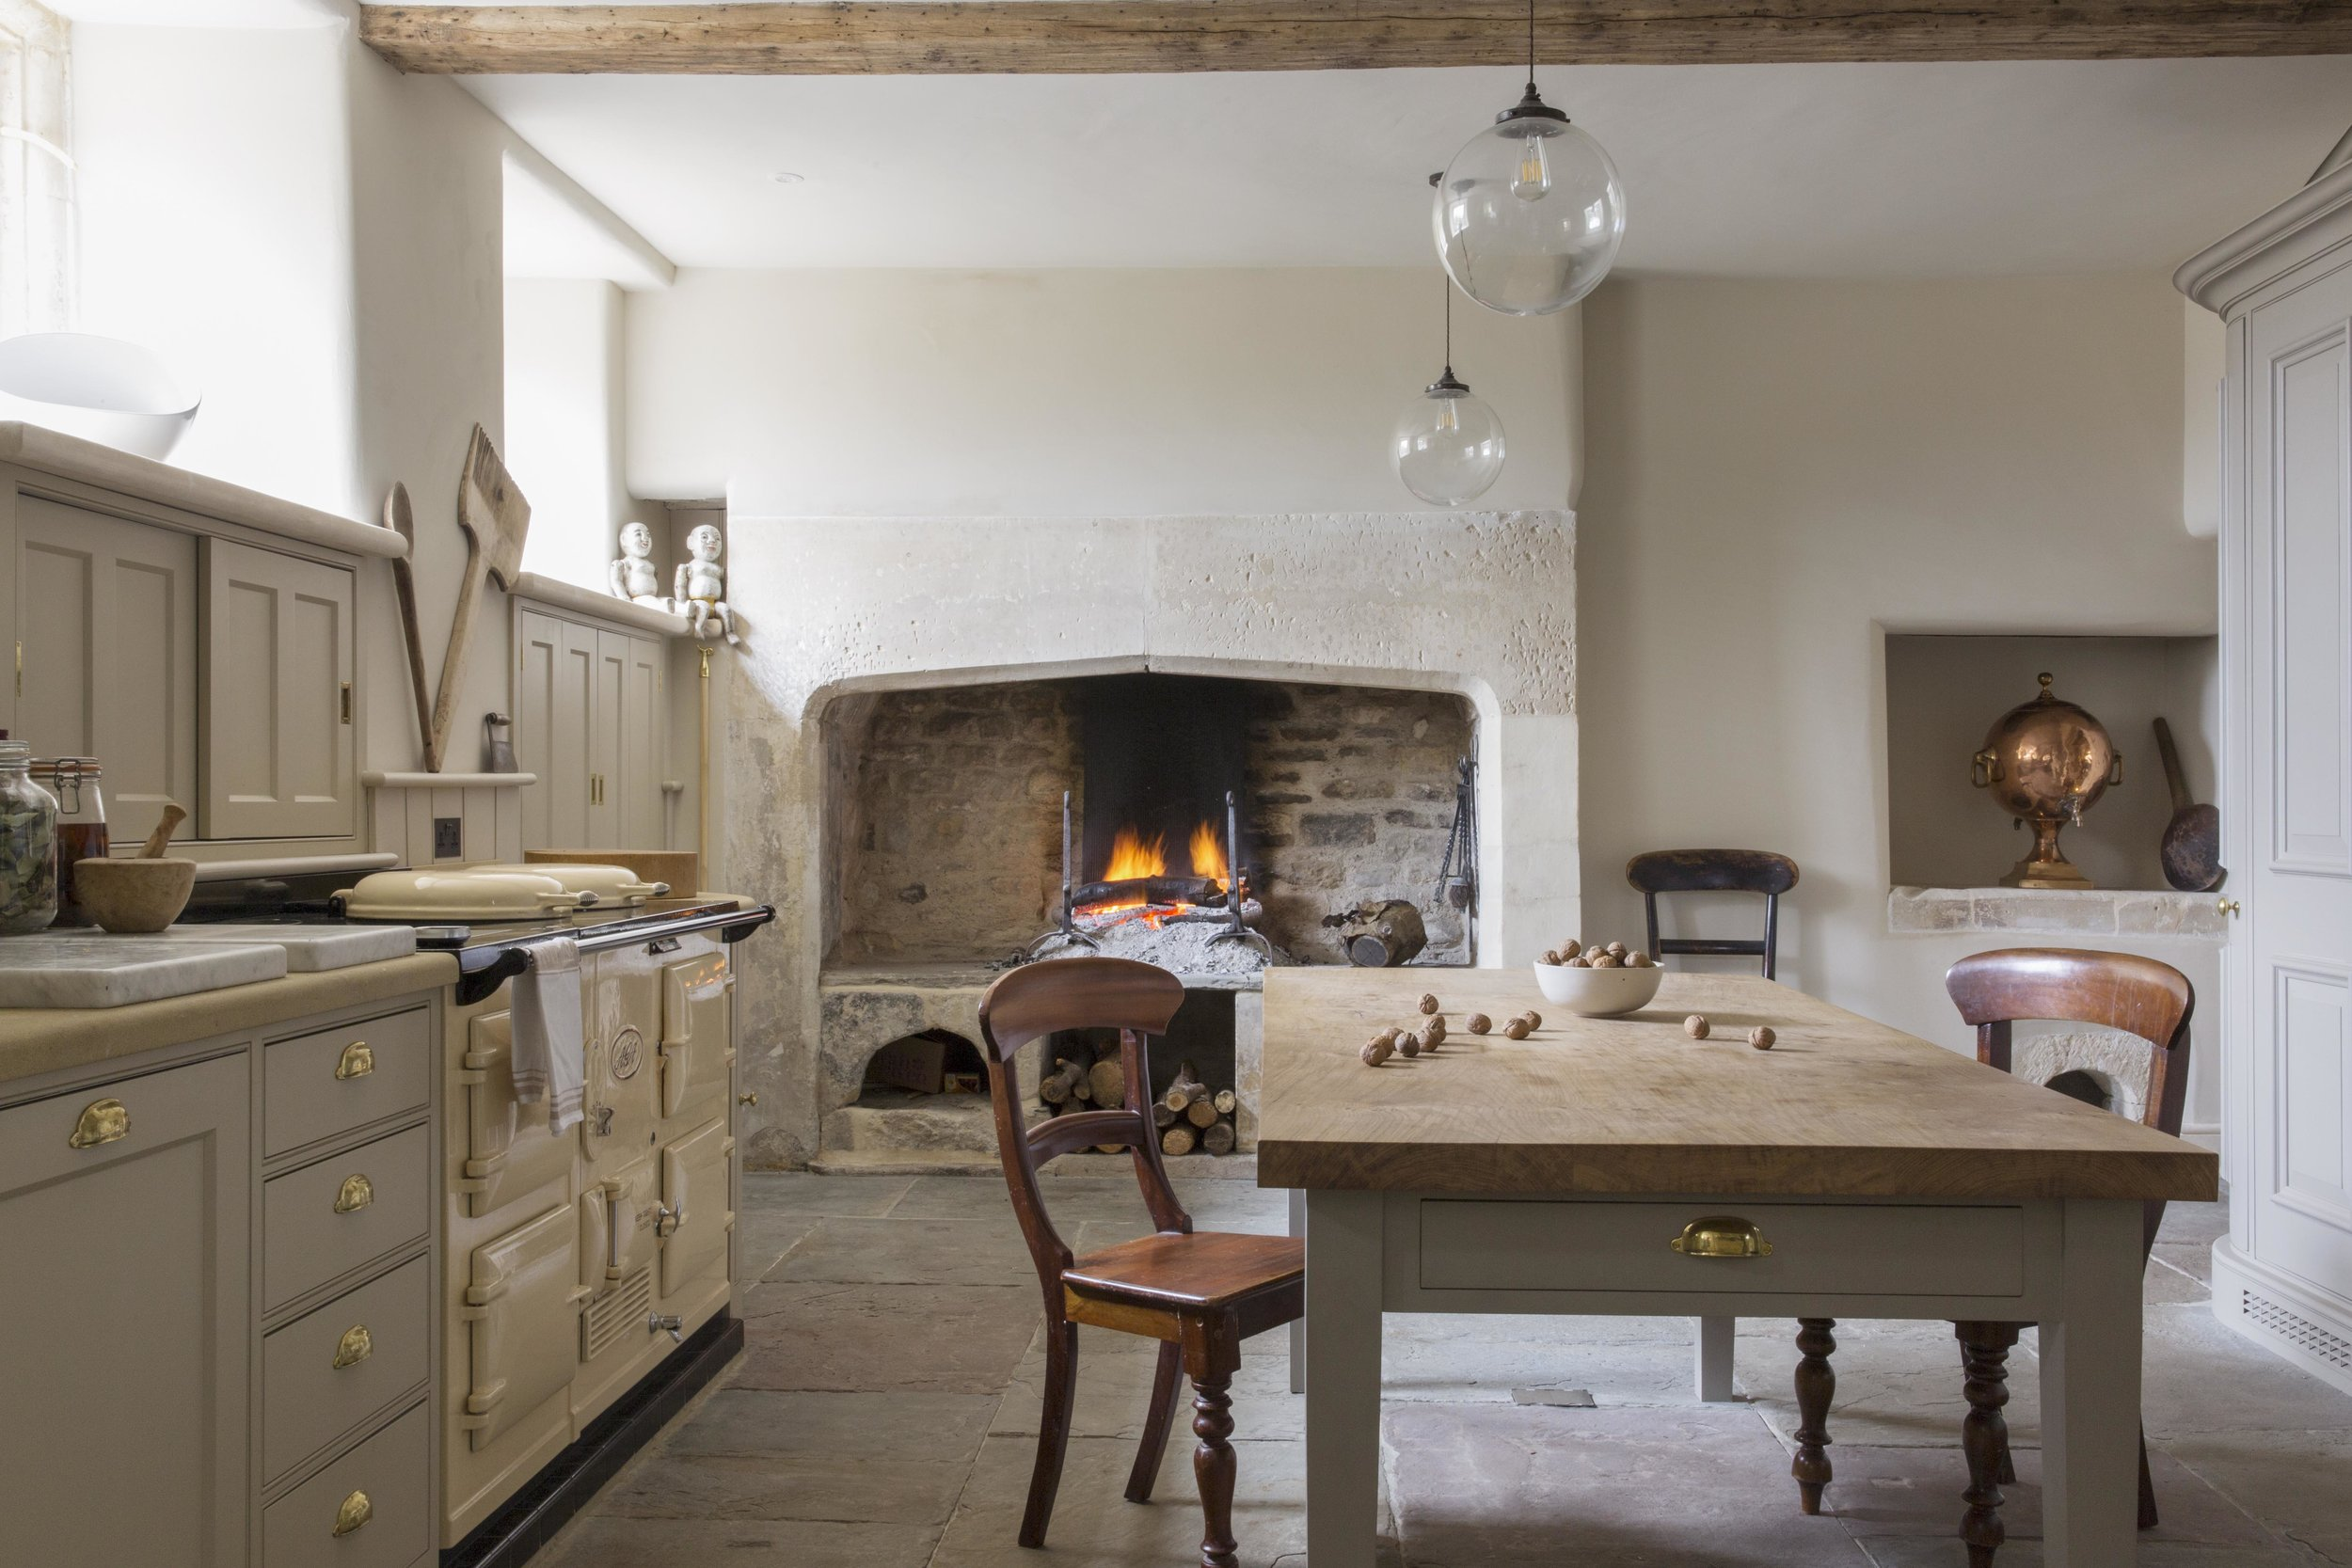 The original open fireplace adds character and authenticity.